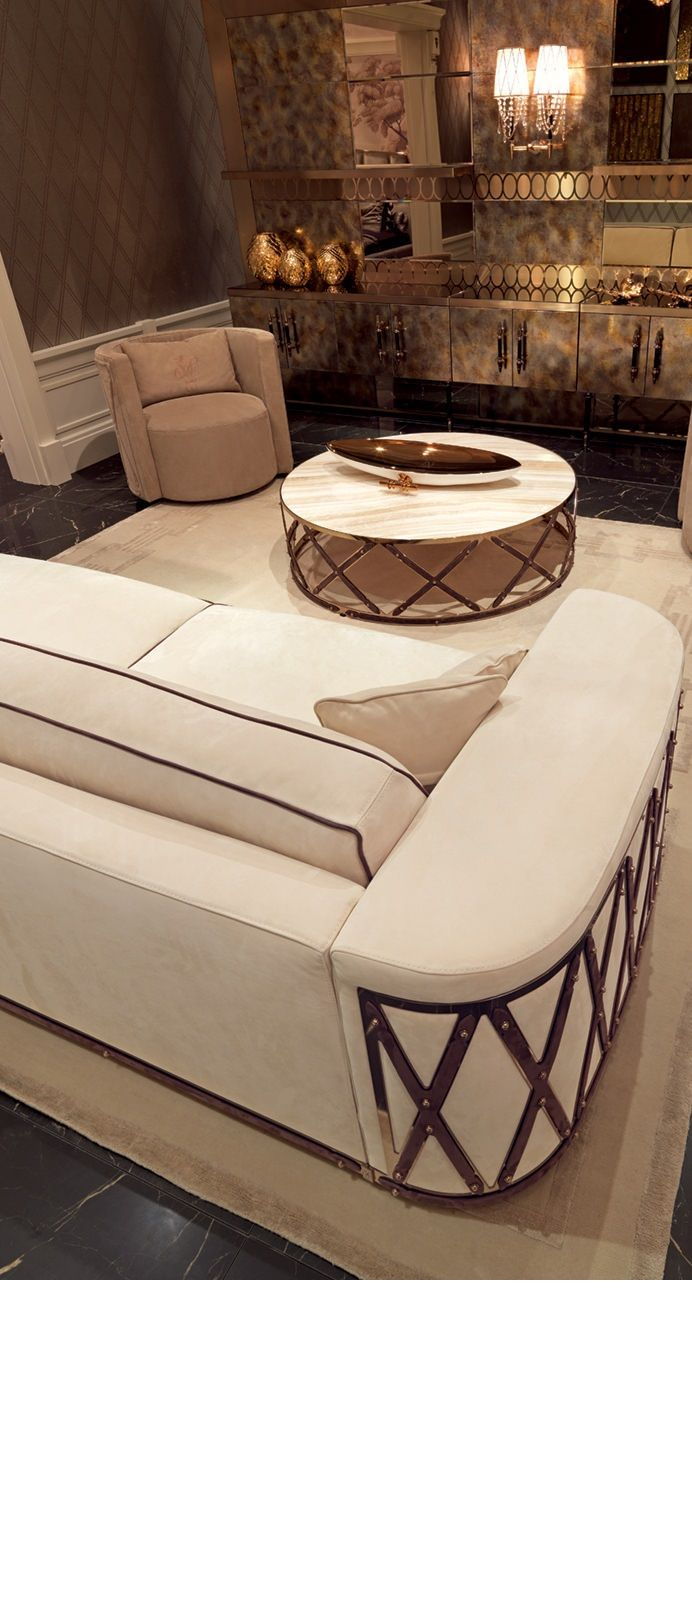 luxury furniture   designer furniture   custom made furniture  by InStyle. 25  best ideas about High quality furniture on Pinterest   Quality